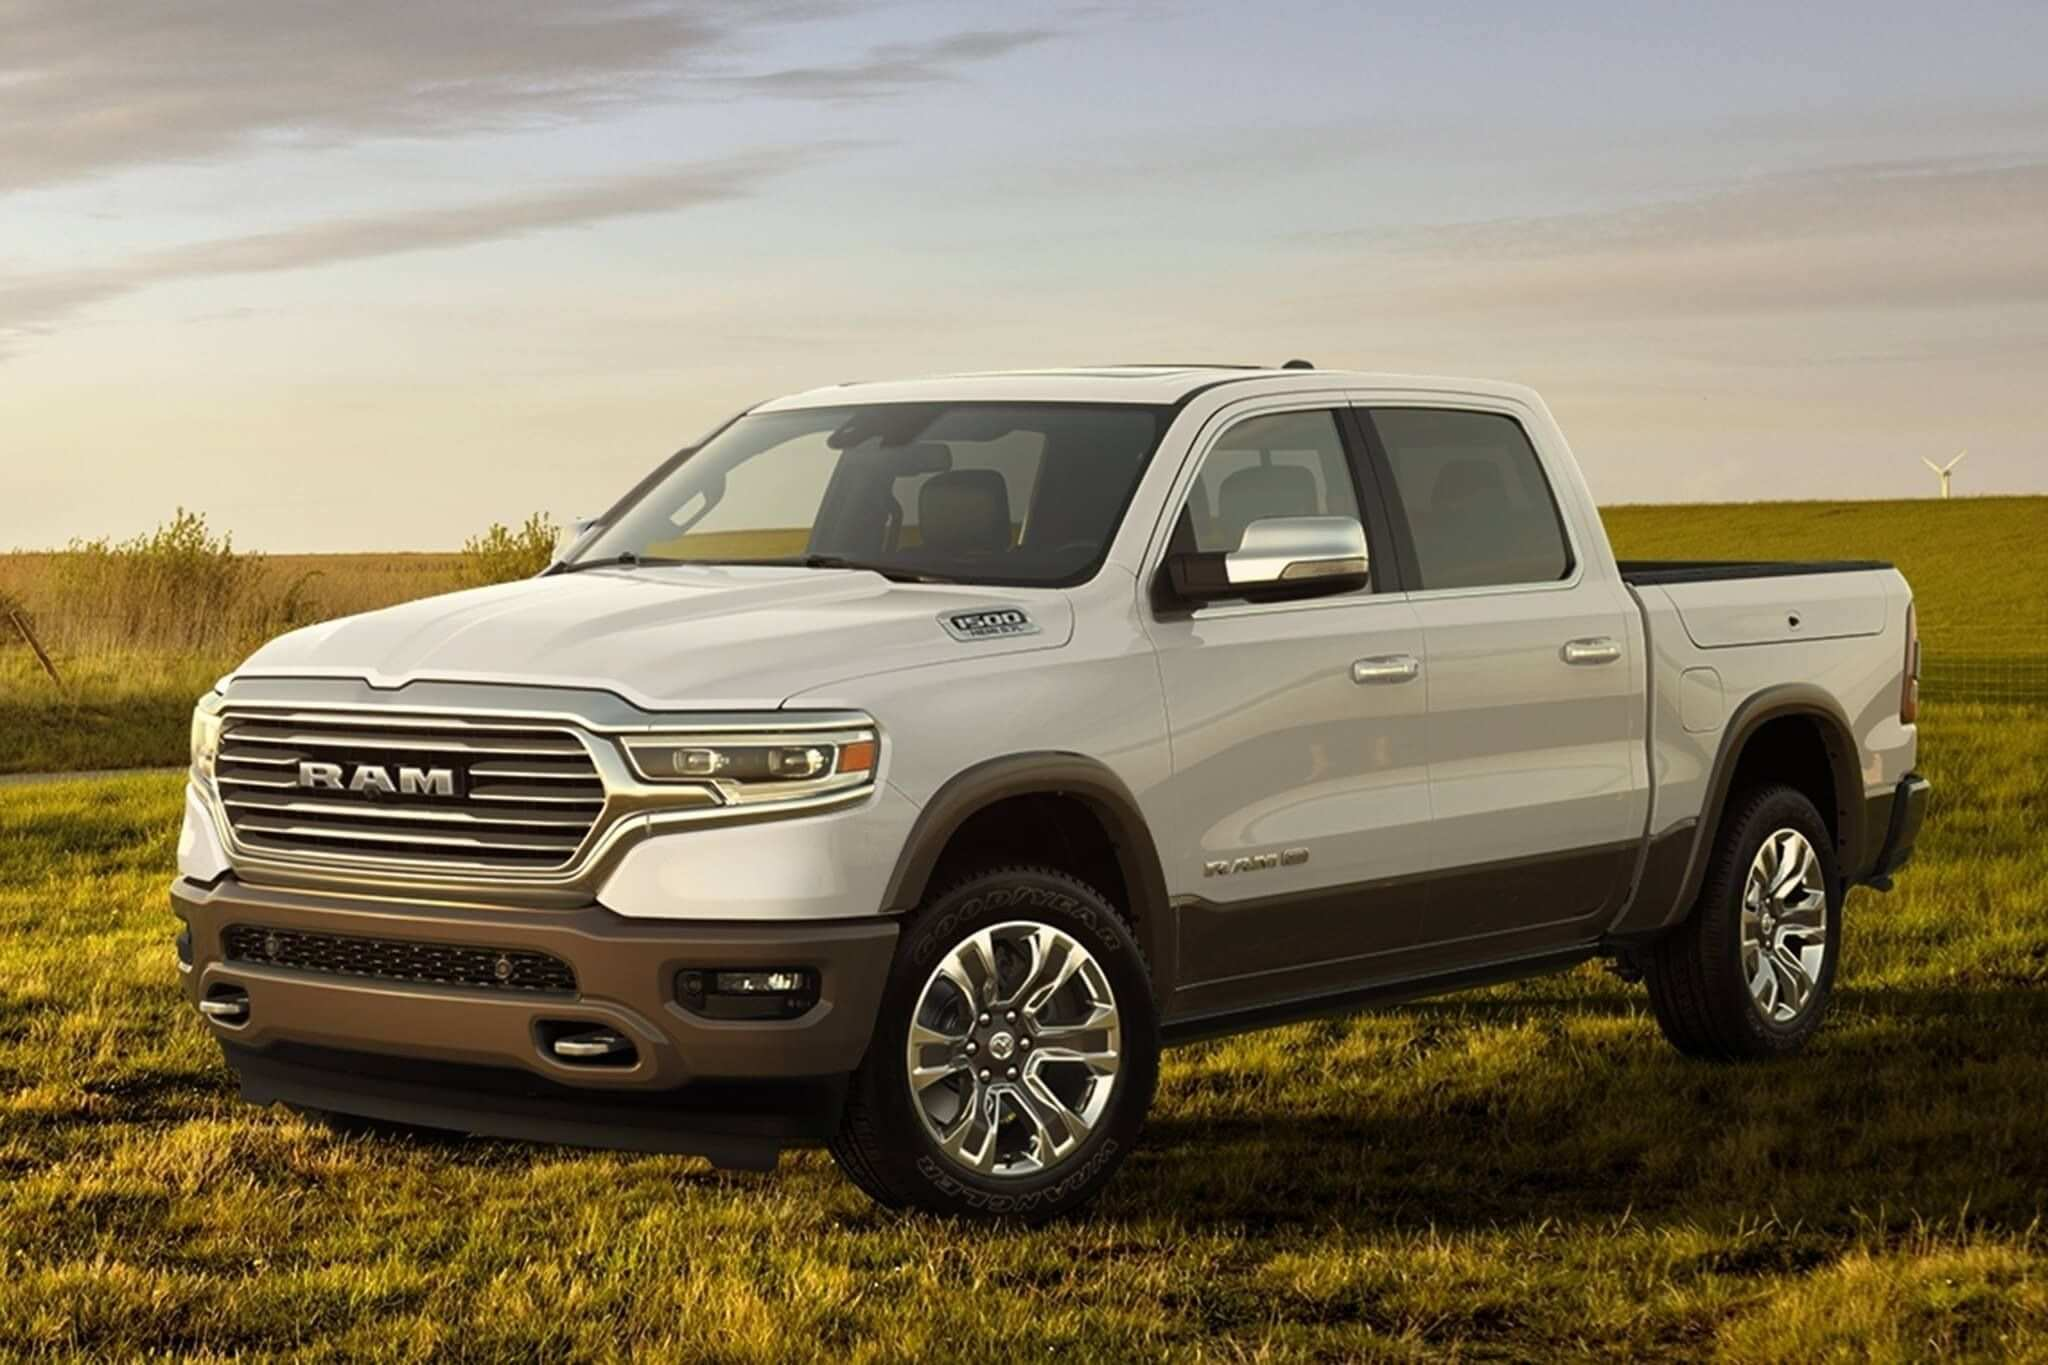 70 Great 2020 Dodge Ram Pickup Price and Review by 2020 Dodge Ram Pickup